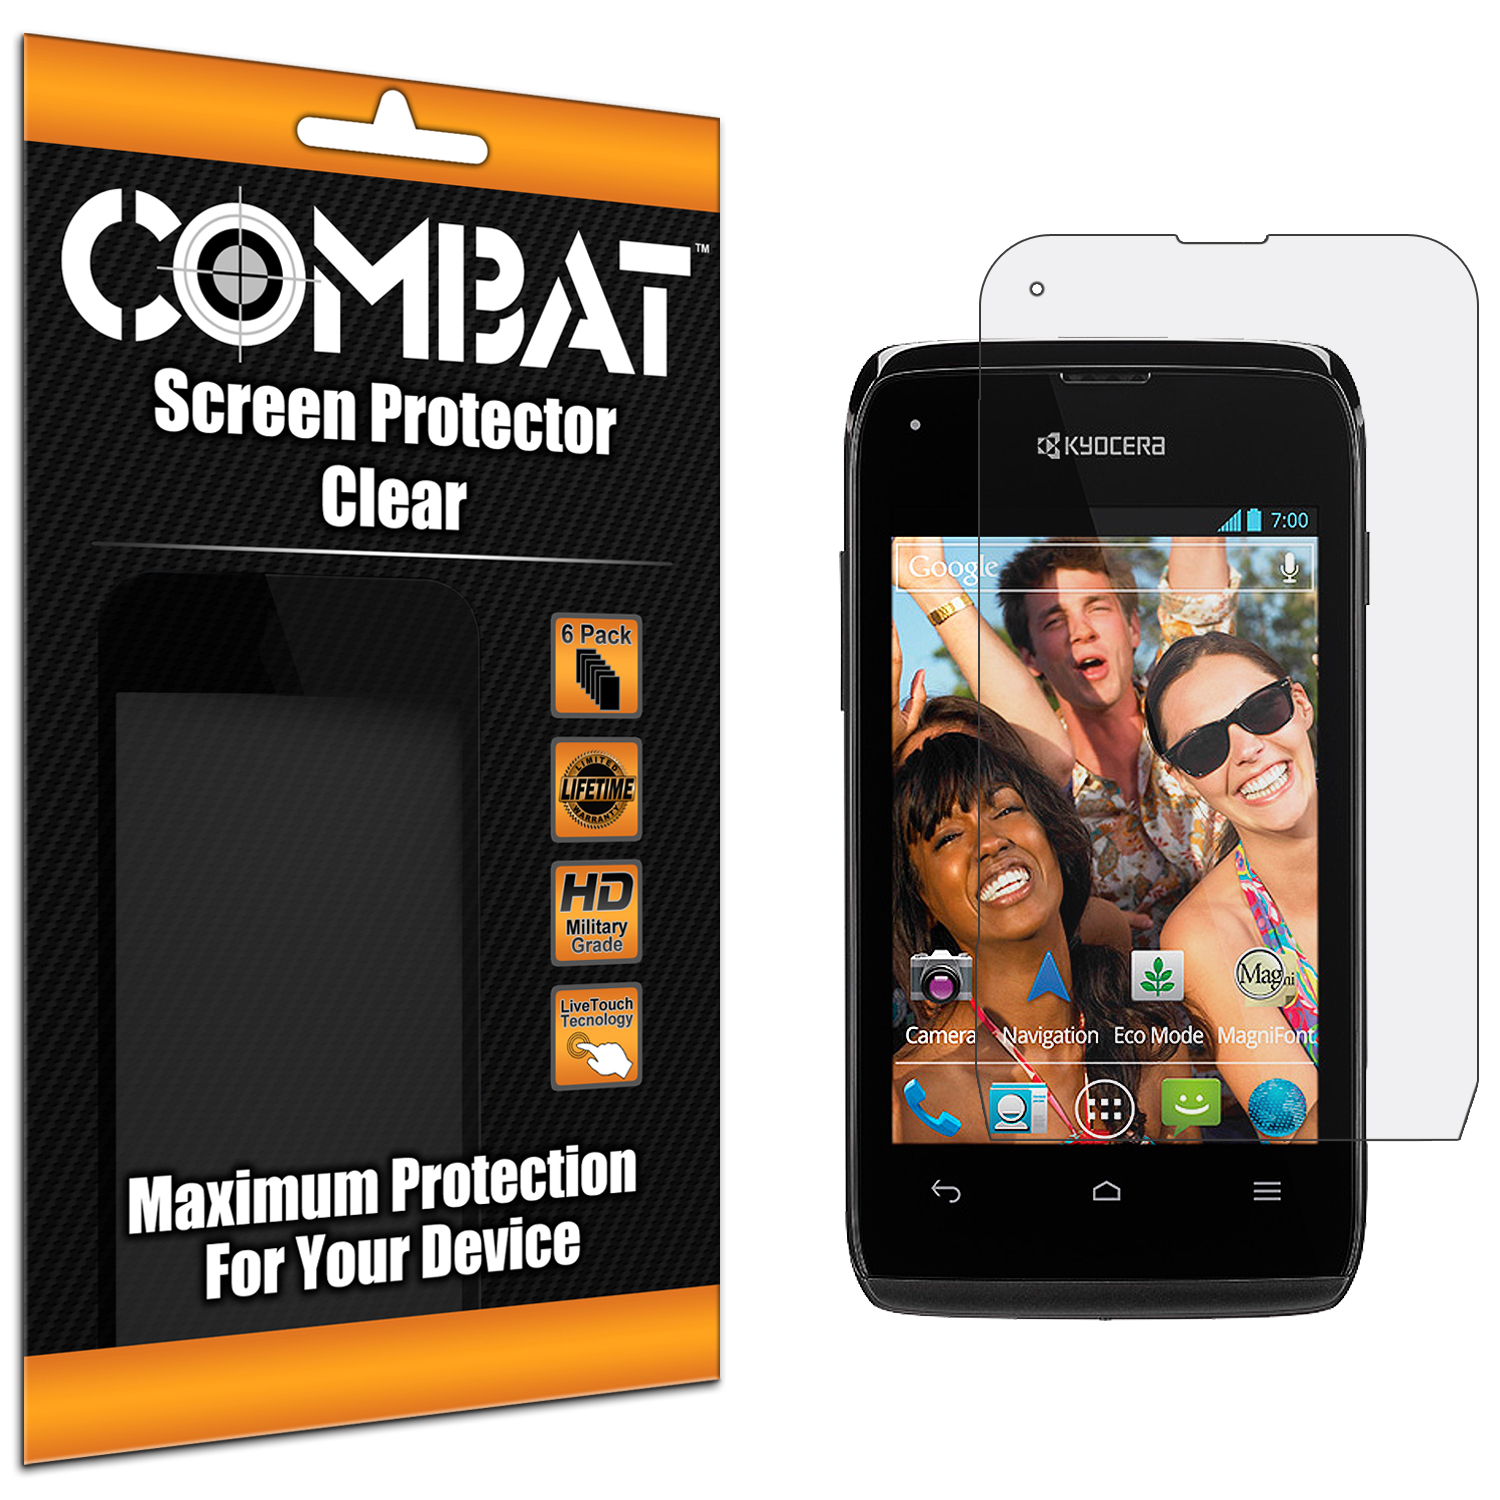 Kyocera Event C5133 Combat 6 Pack HD Clear Screen Protector